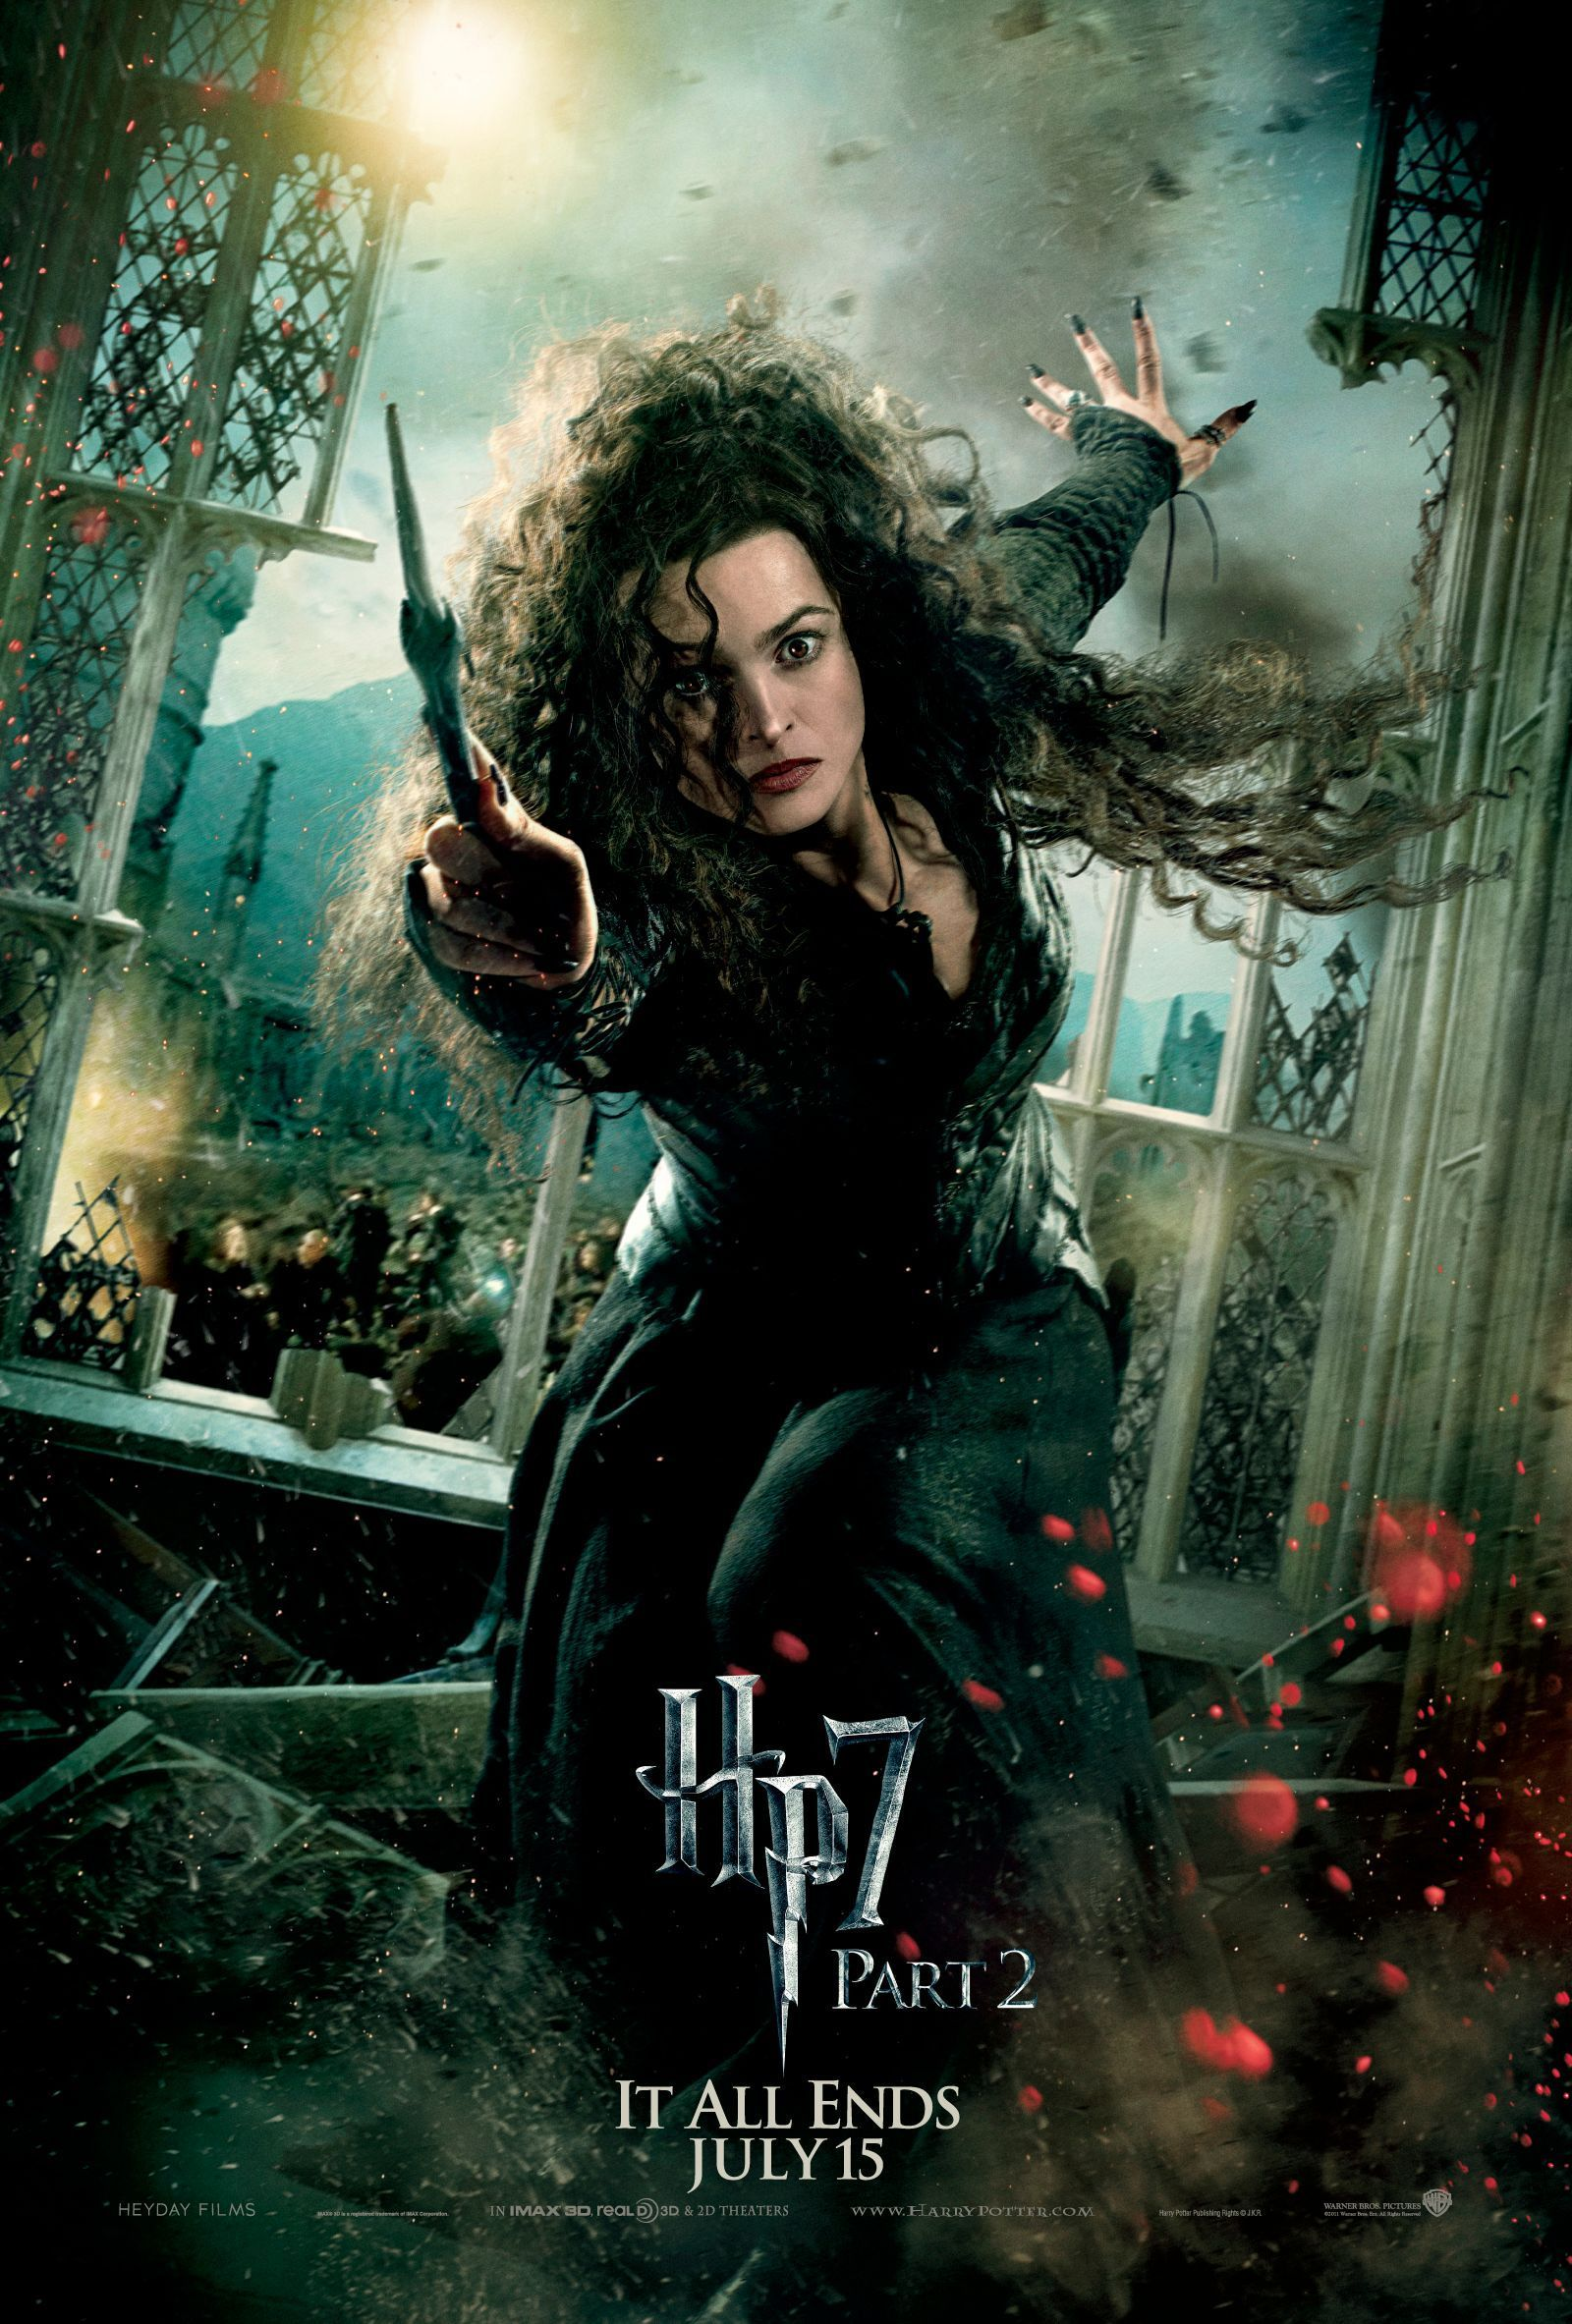 A larger pic of Bellatrix's poster